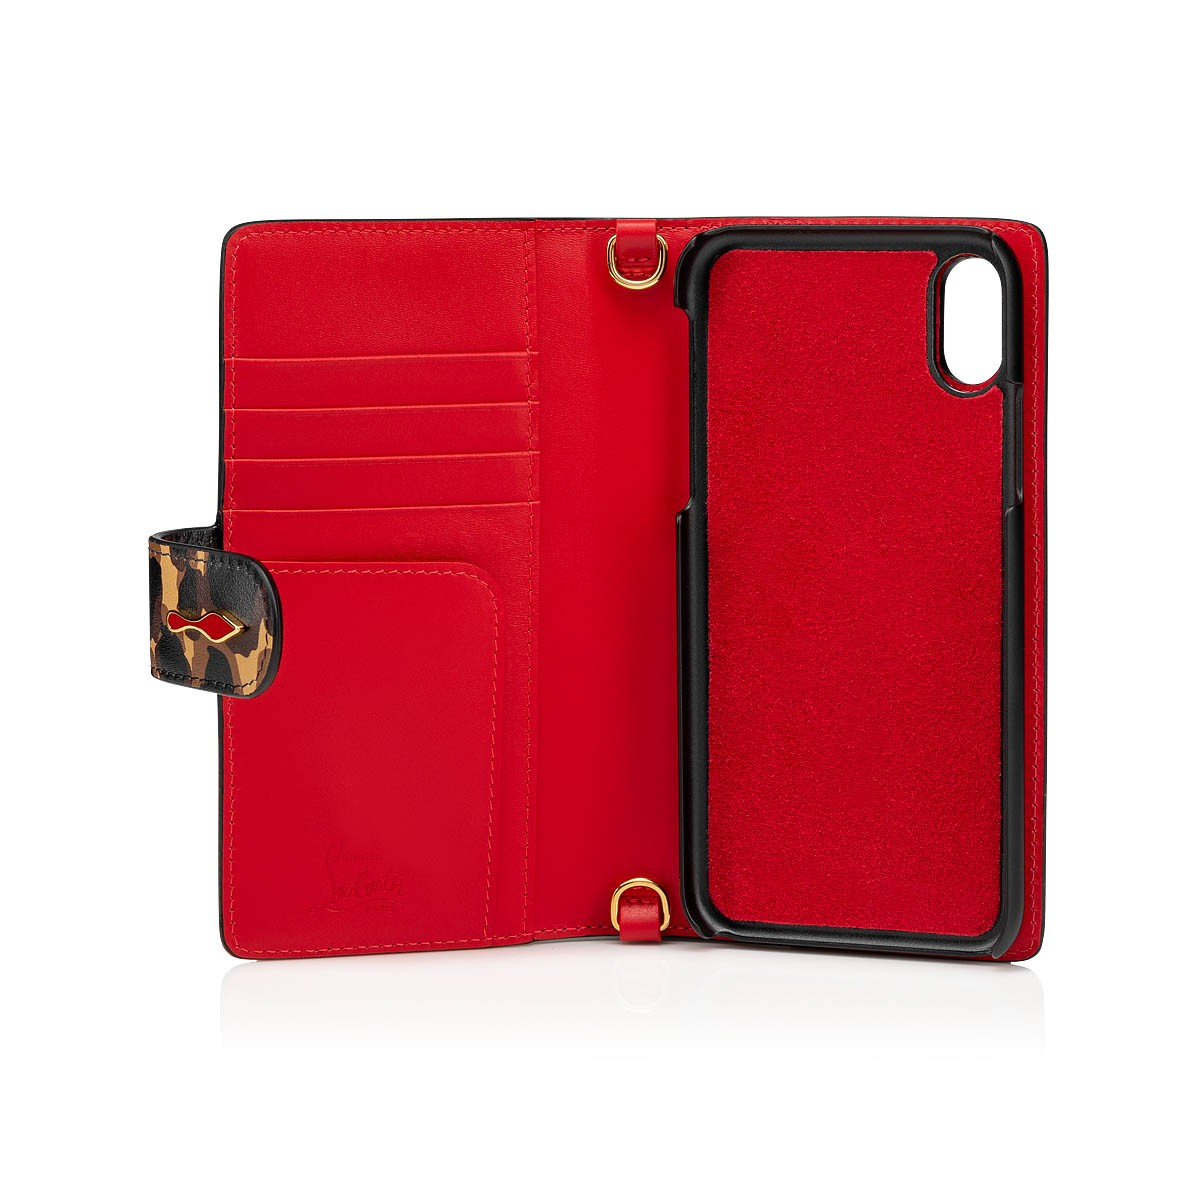 Small Leather Goods - Loubiflap Chain Case - Christian Louboutin